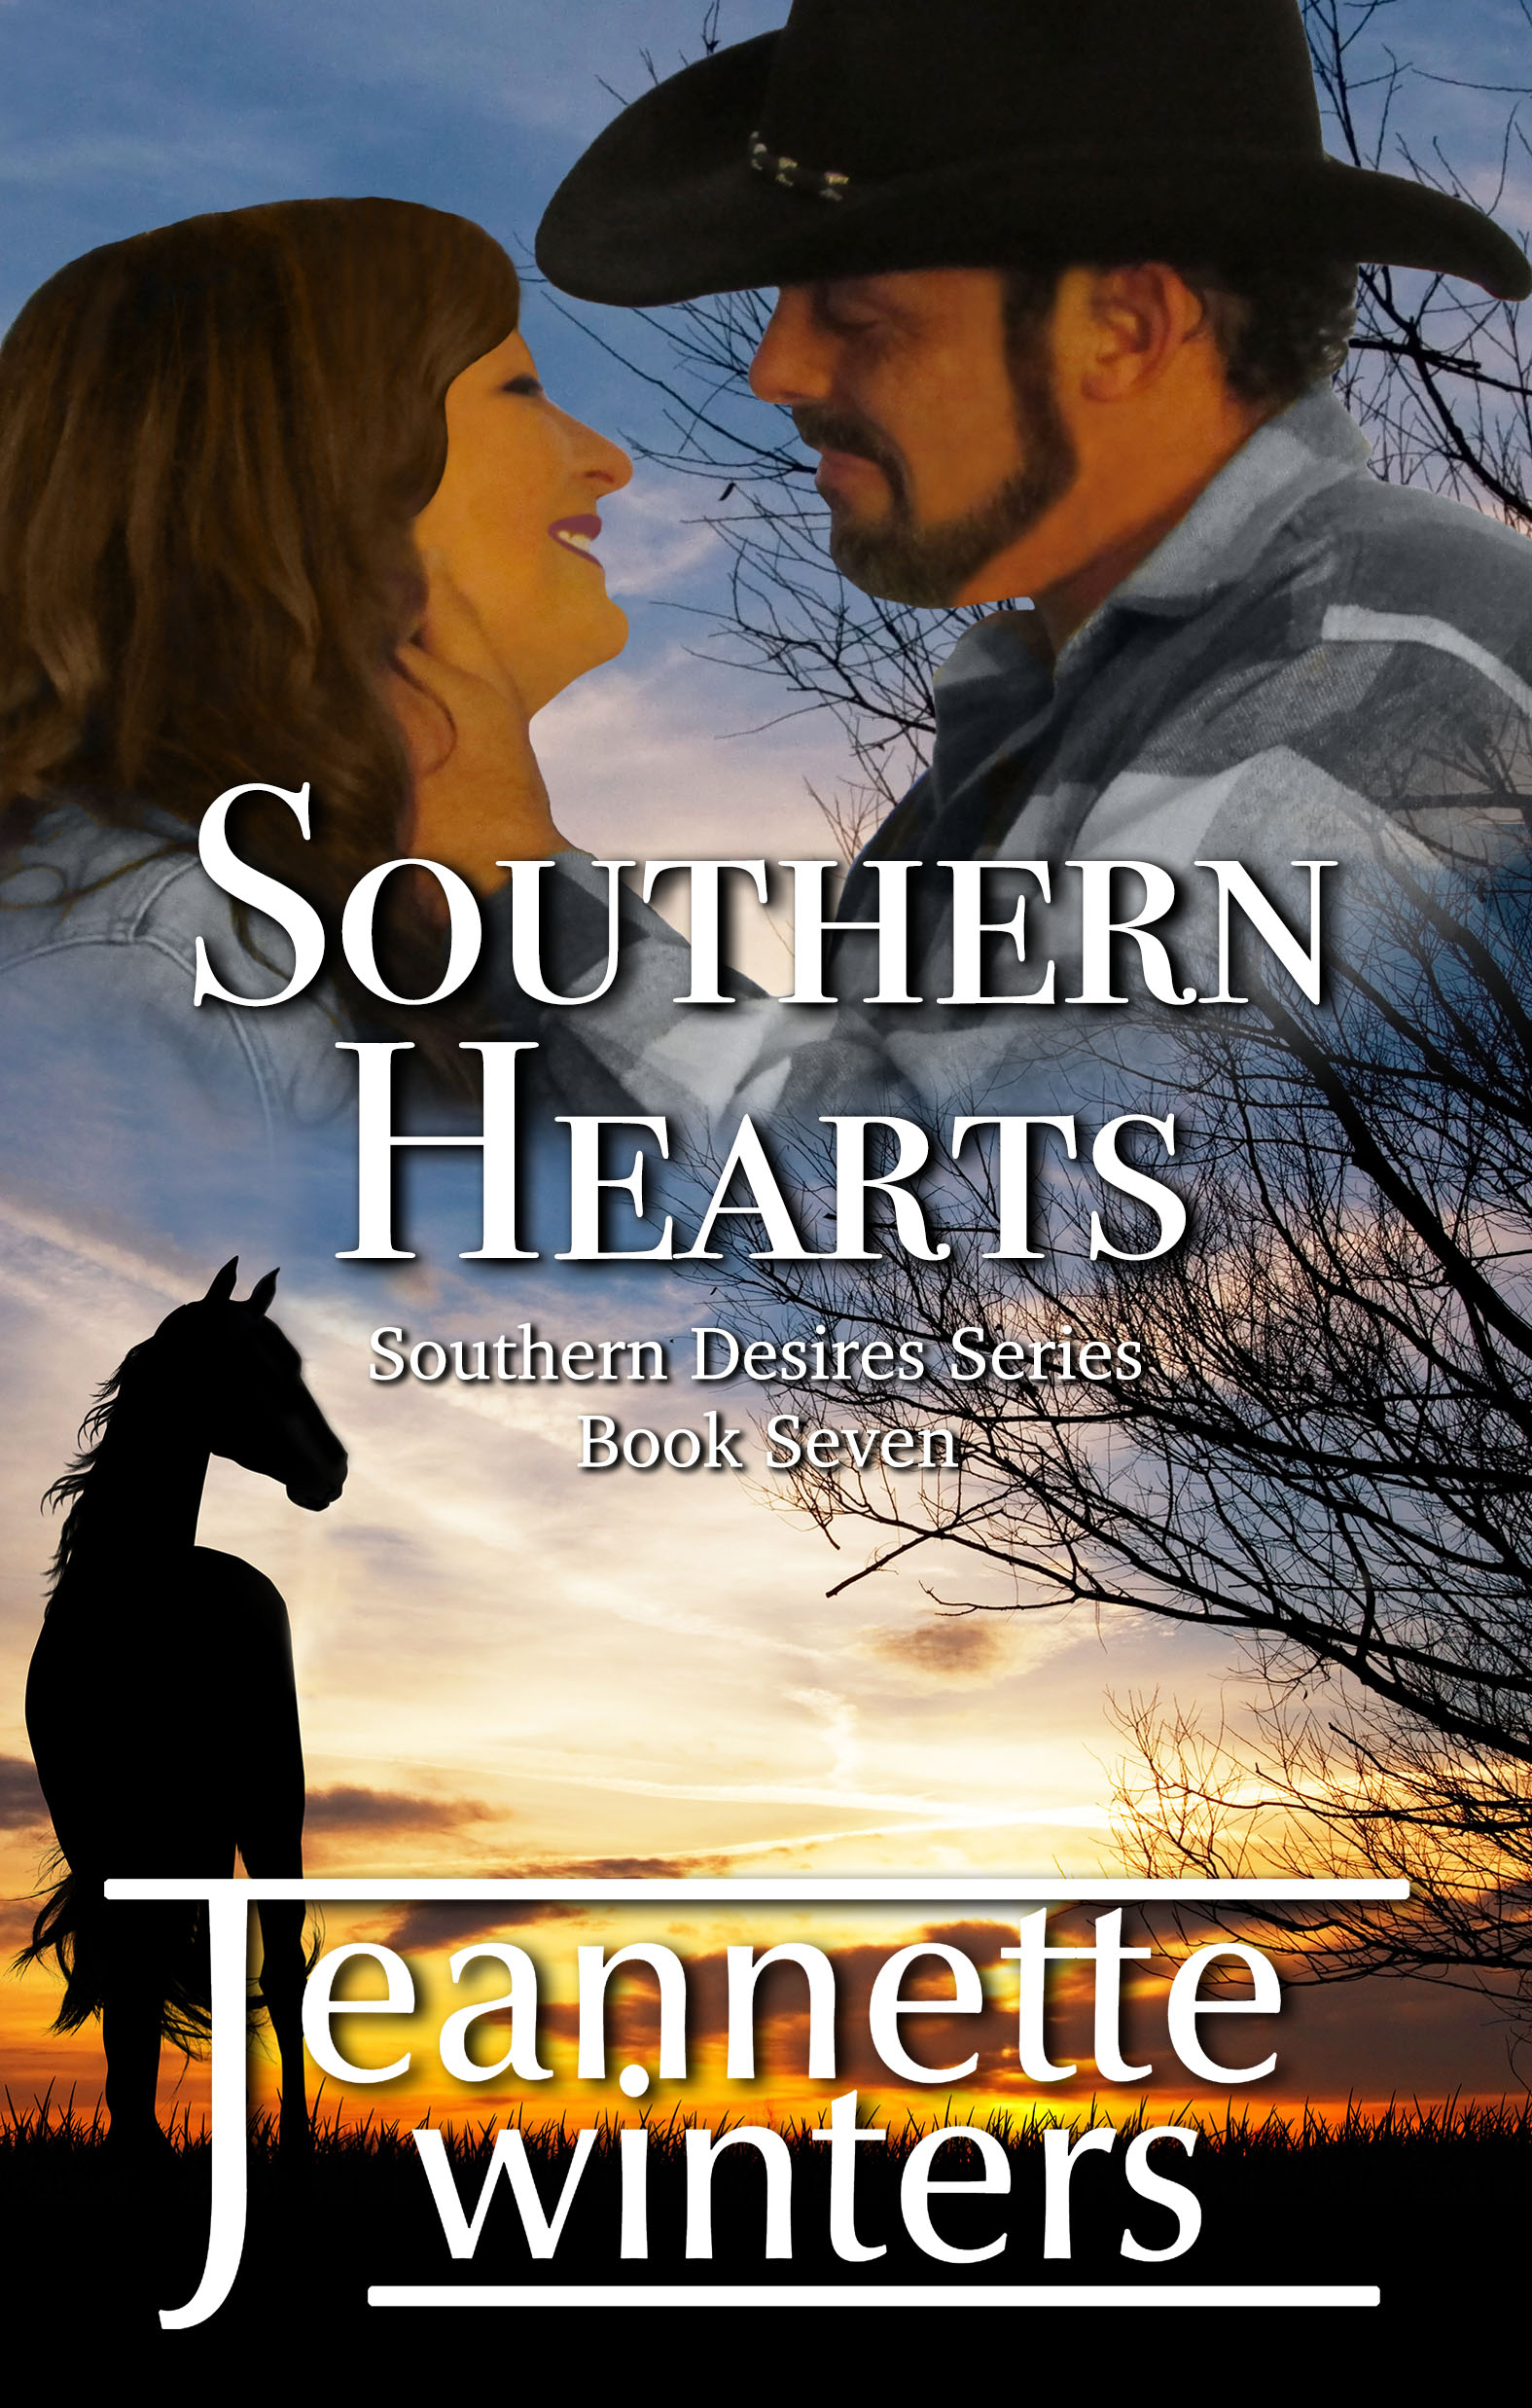 Were you looking to hear what happened with Donna Watson? Did she take over where Sissie left off as the local matchmaker or did Sissie turn the tables on Donna and reveal to her what she'd been missing all along. Her true love.  Find out in this fun novella